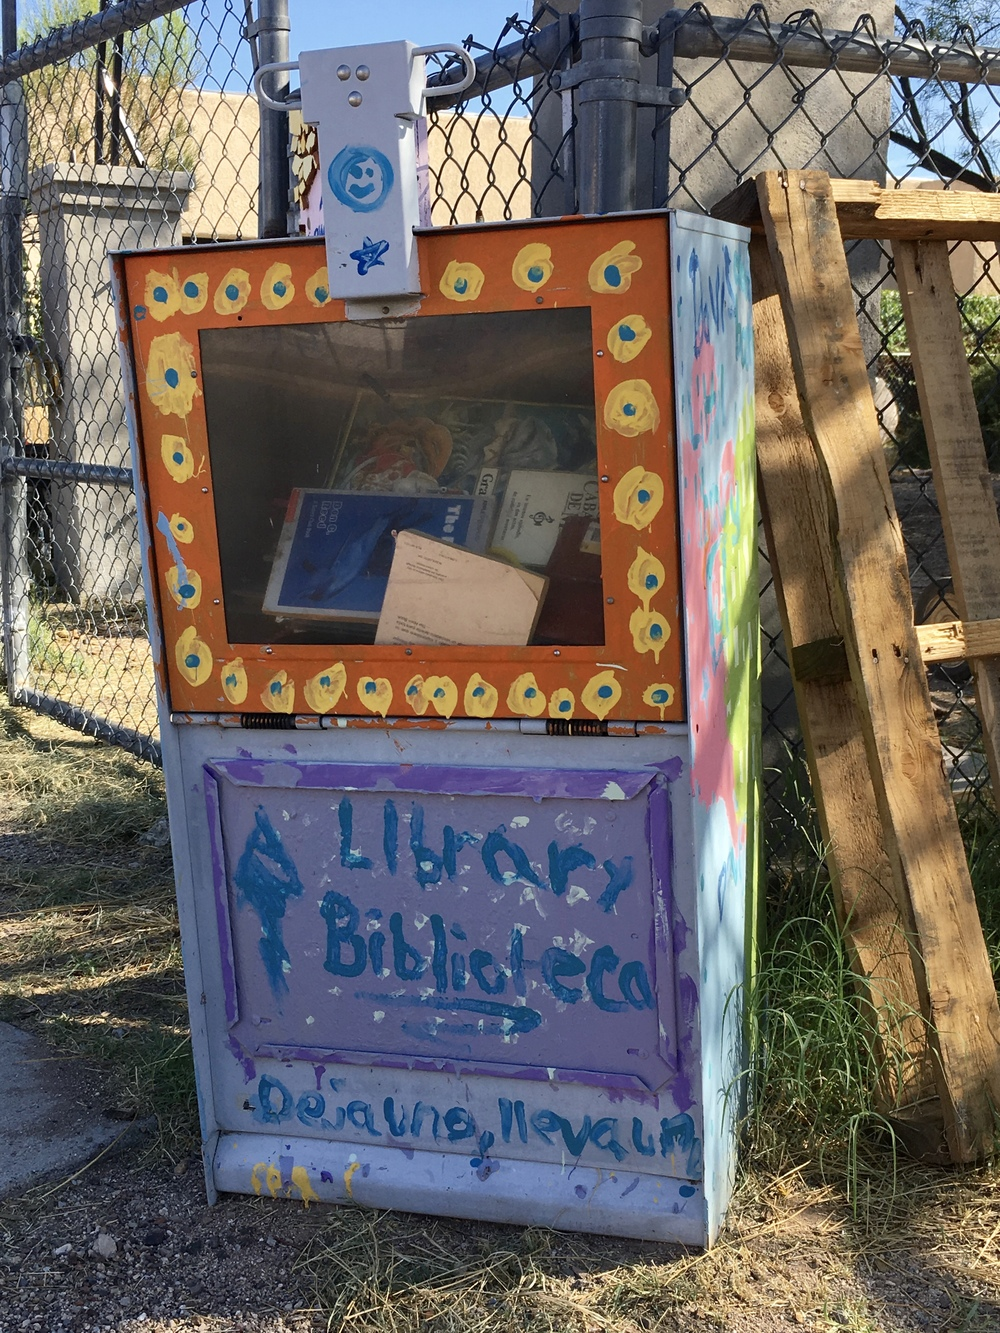 """Davis Bilingual Magnet School's box next to its garden is filled with children's books. Three reads:  """"Un Grillo en Times Square"""" by George Selden. A grillo is a cricket.  """"Night of the Ninjas"""" by Mary Pope Osborne.  """"Animorphs: La Invasion"""" by K.A. Applegate."""